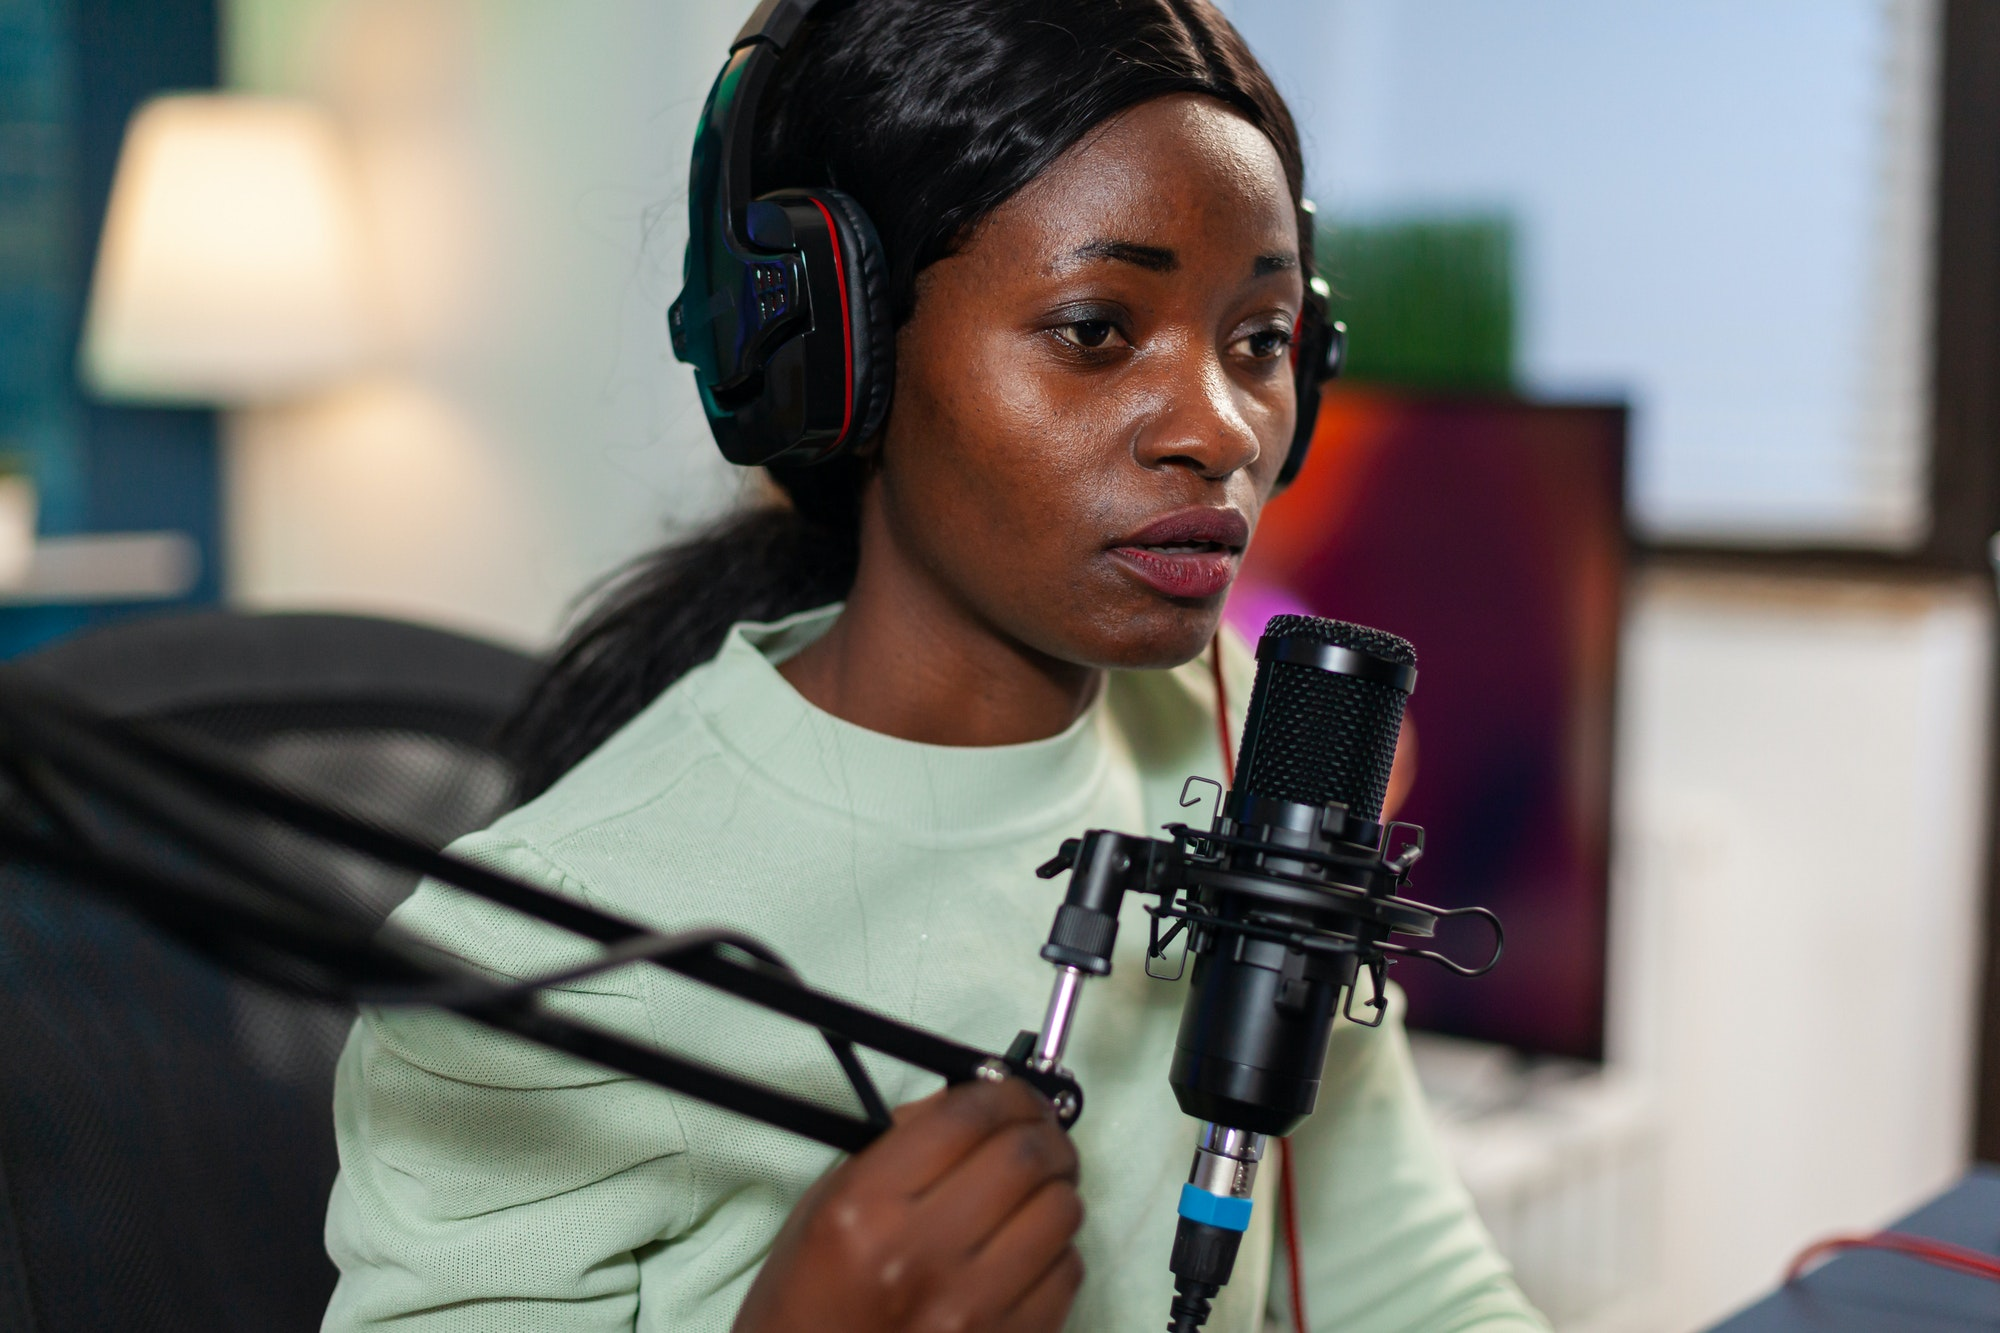 African influencer recording content